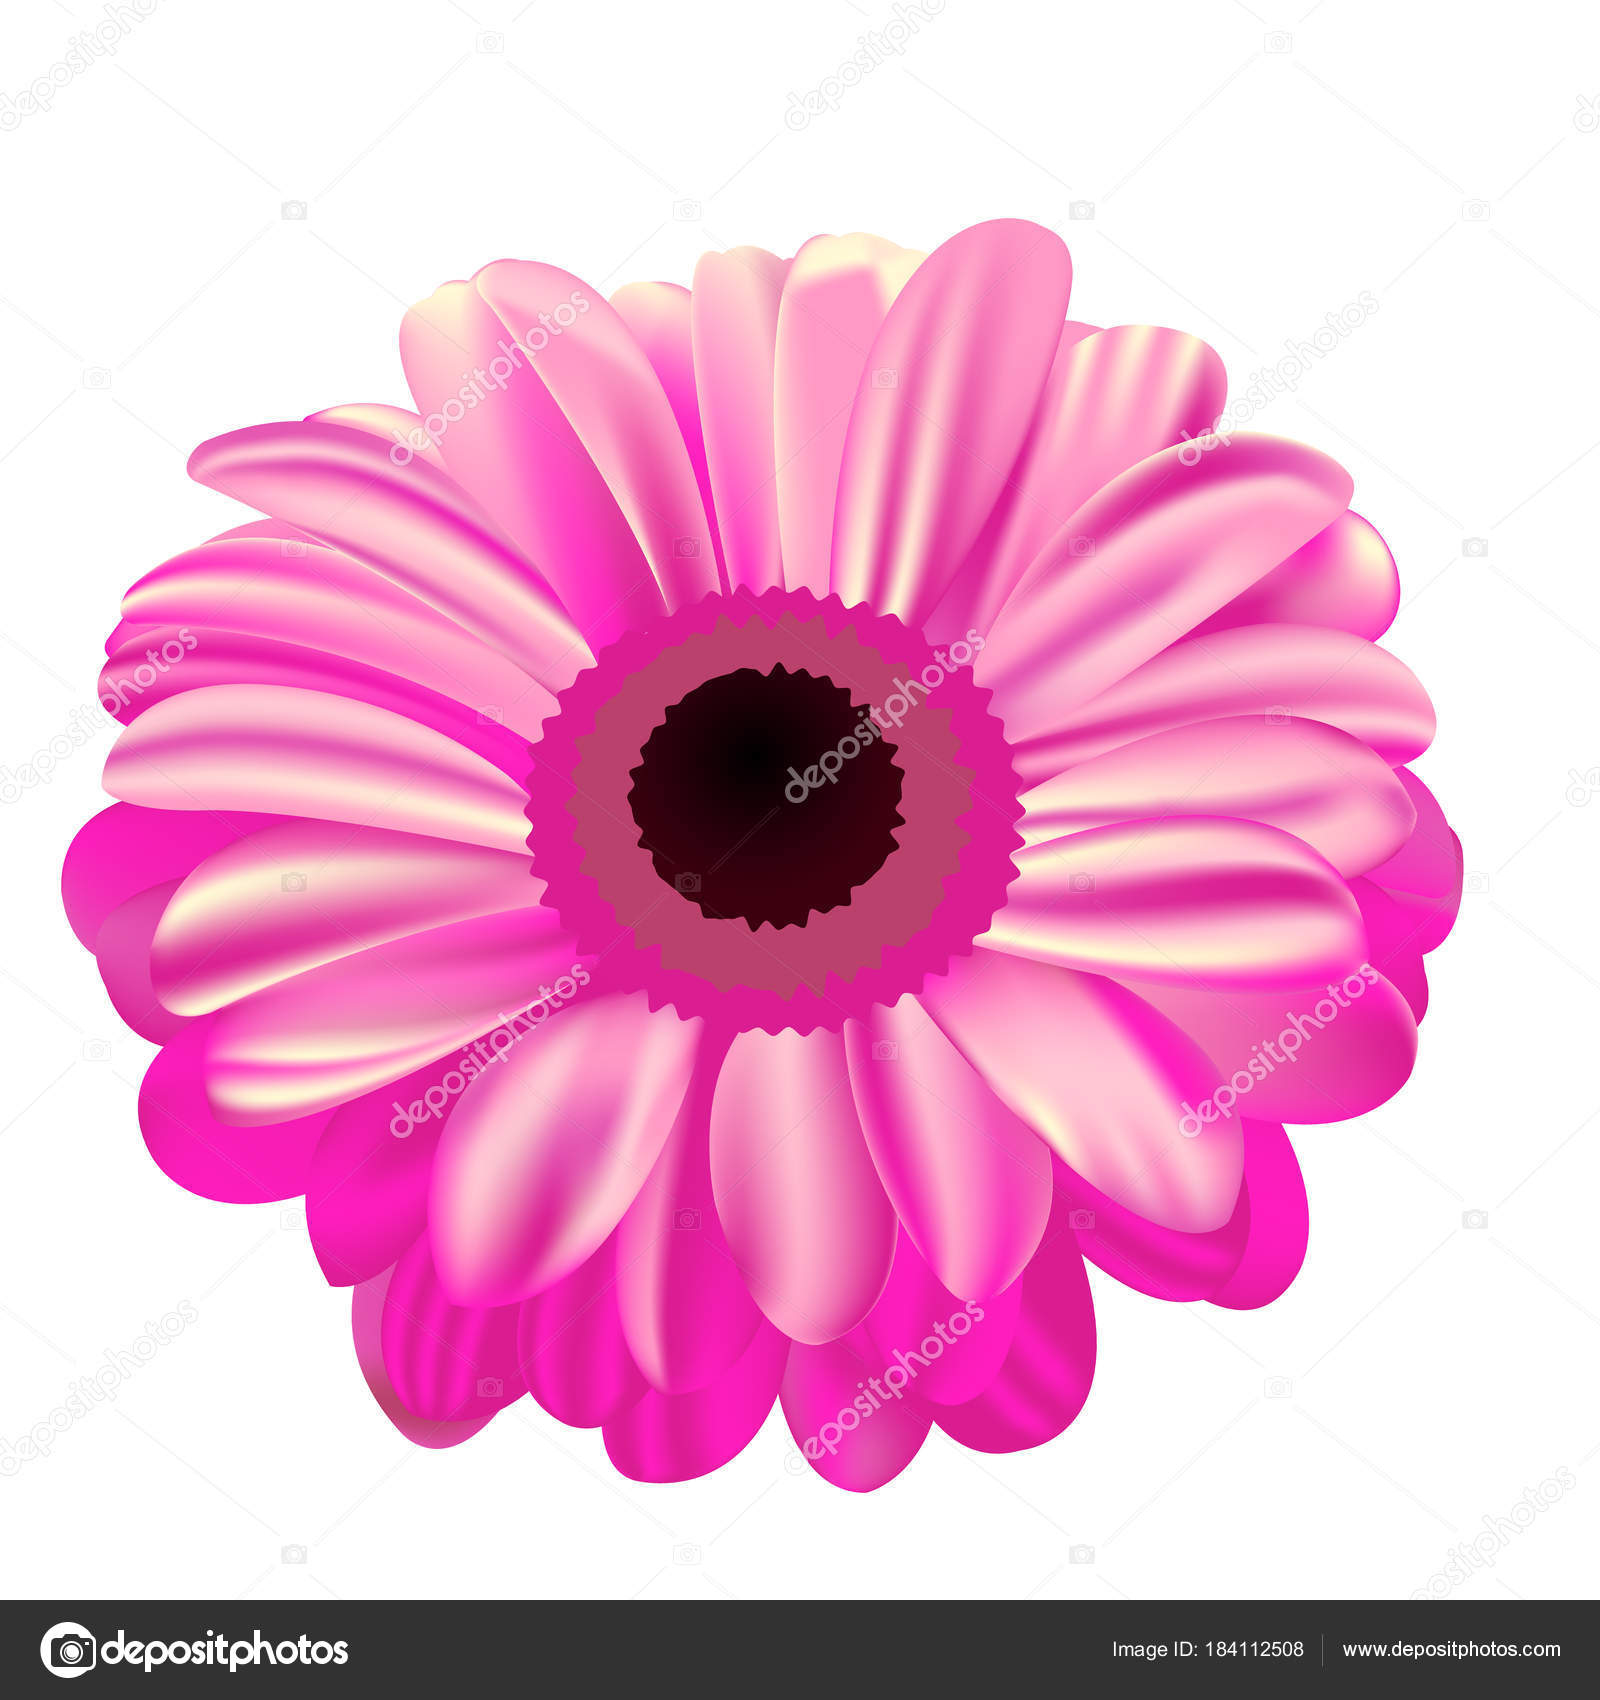 pink gerbera on white background, flower with gradient fill, mes ...